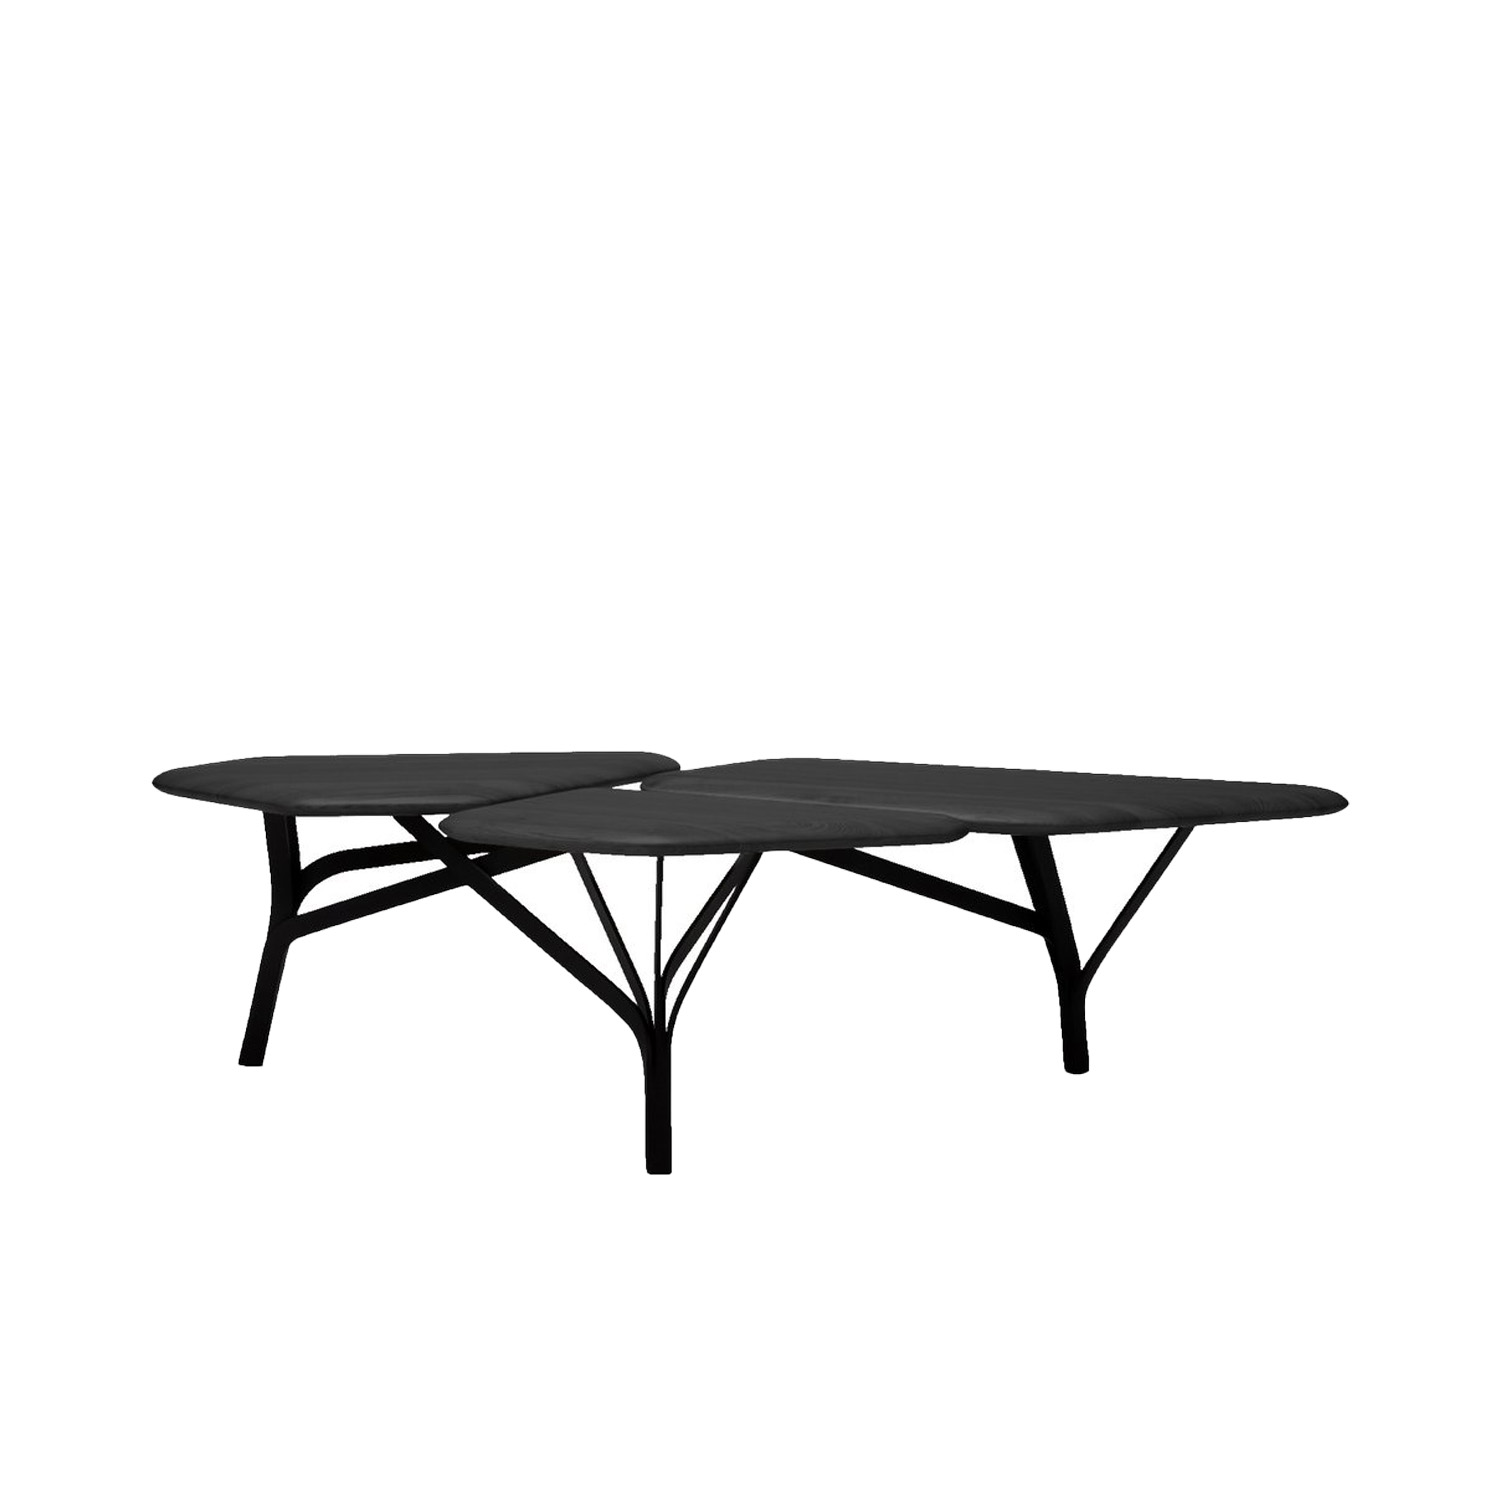 Borghese Coffee Table - The Borghese table, is inspired by the umbrella pines at the Villa Borghese gardens in Rome. The characteristic network of branches is translated as a graphic steel framework supporting a trio of solid wood tops  | Matter of Stuff